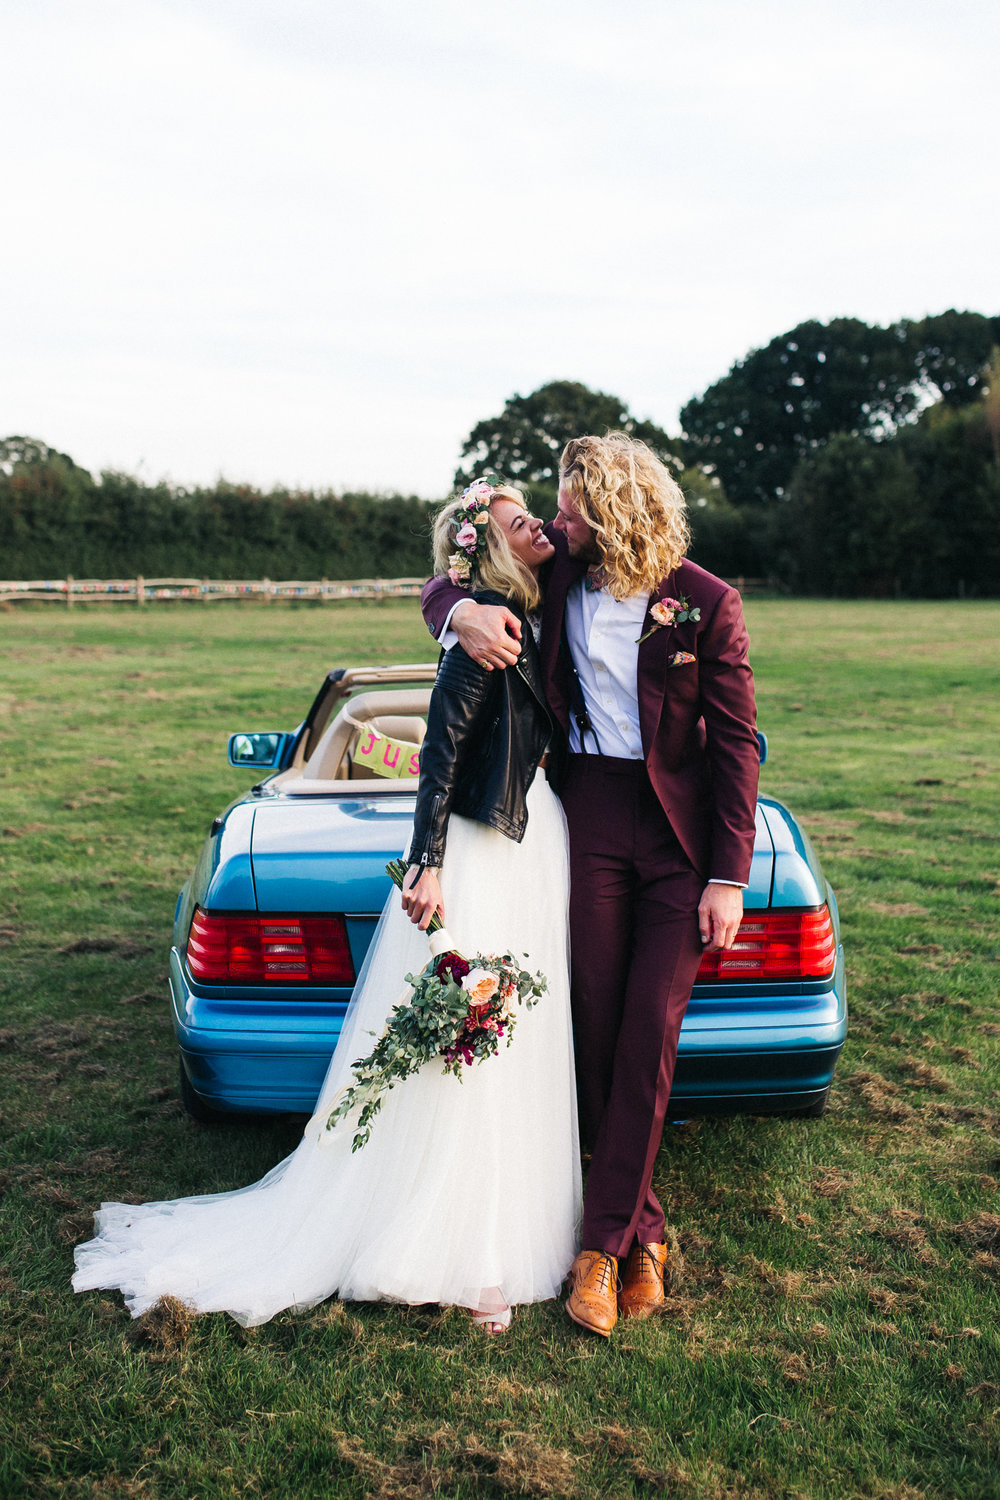 a bride and groom stand in front of a 90s blue car. she's wearing a white dress and a black leather jacket and he's wearing a burgundy suit